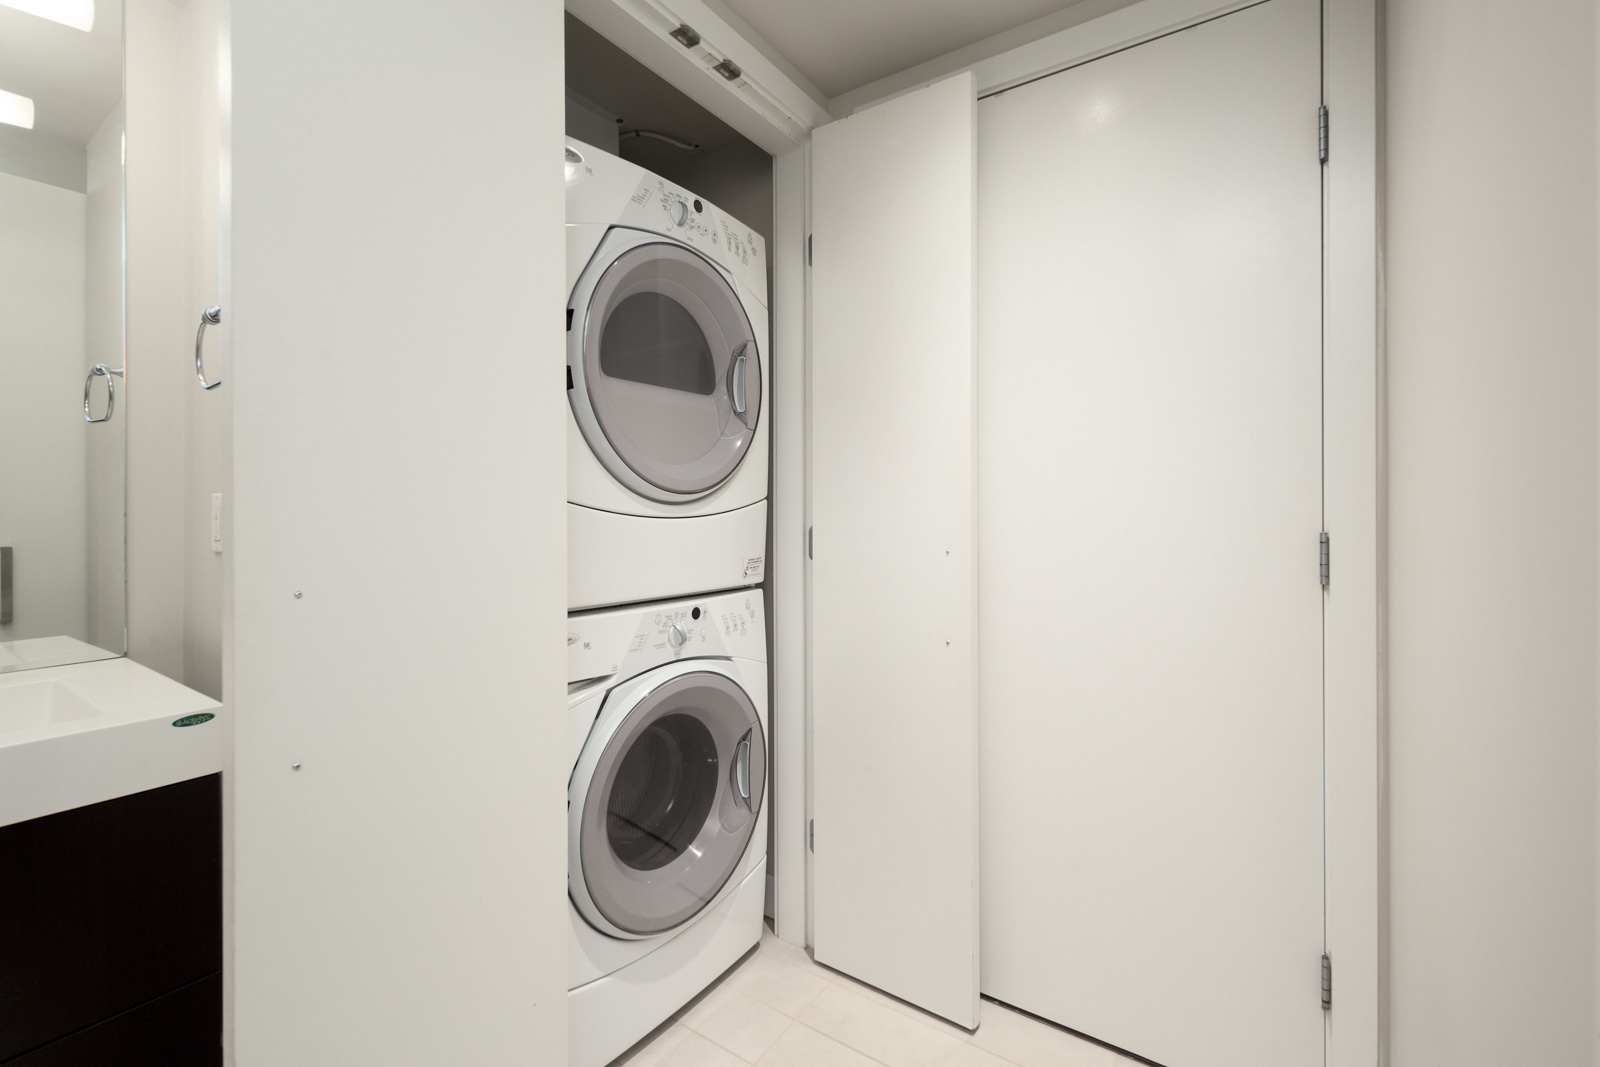 in-suite laundry unit in luxury condo managed by Birds Nest Properties in Downtown Vancouver